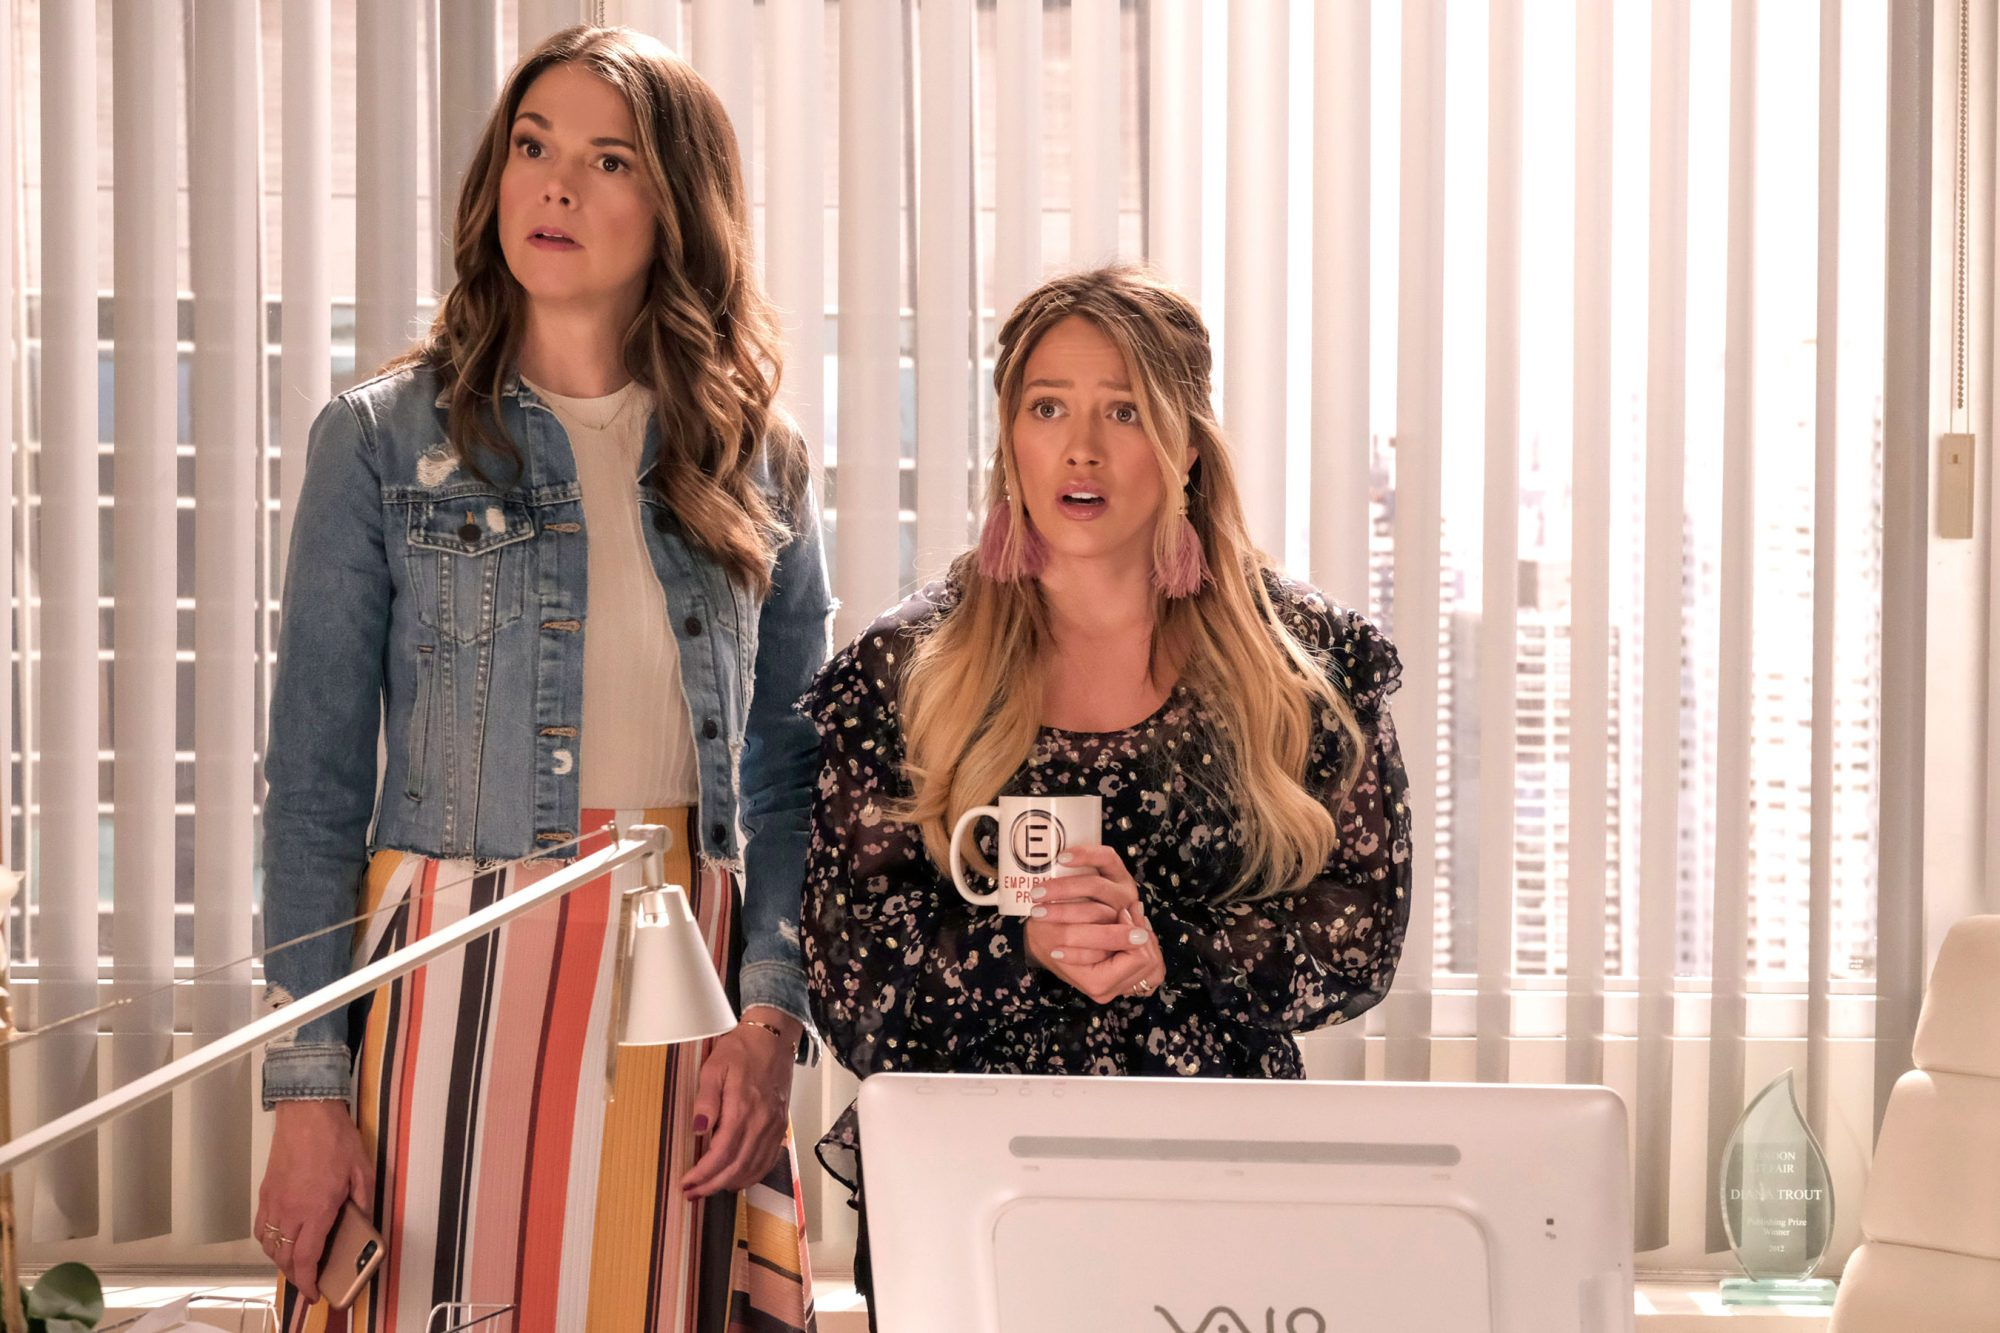 """Younger"" Ep. 512 (Airs 8/28/18)"